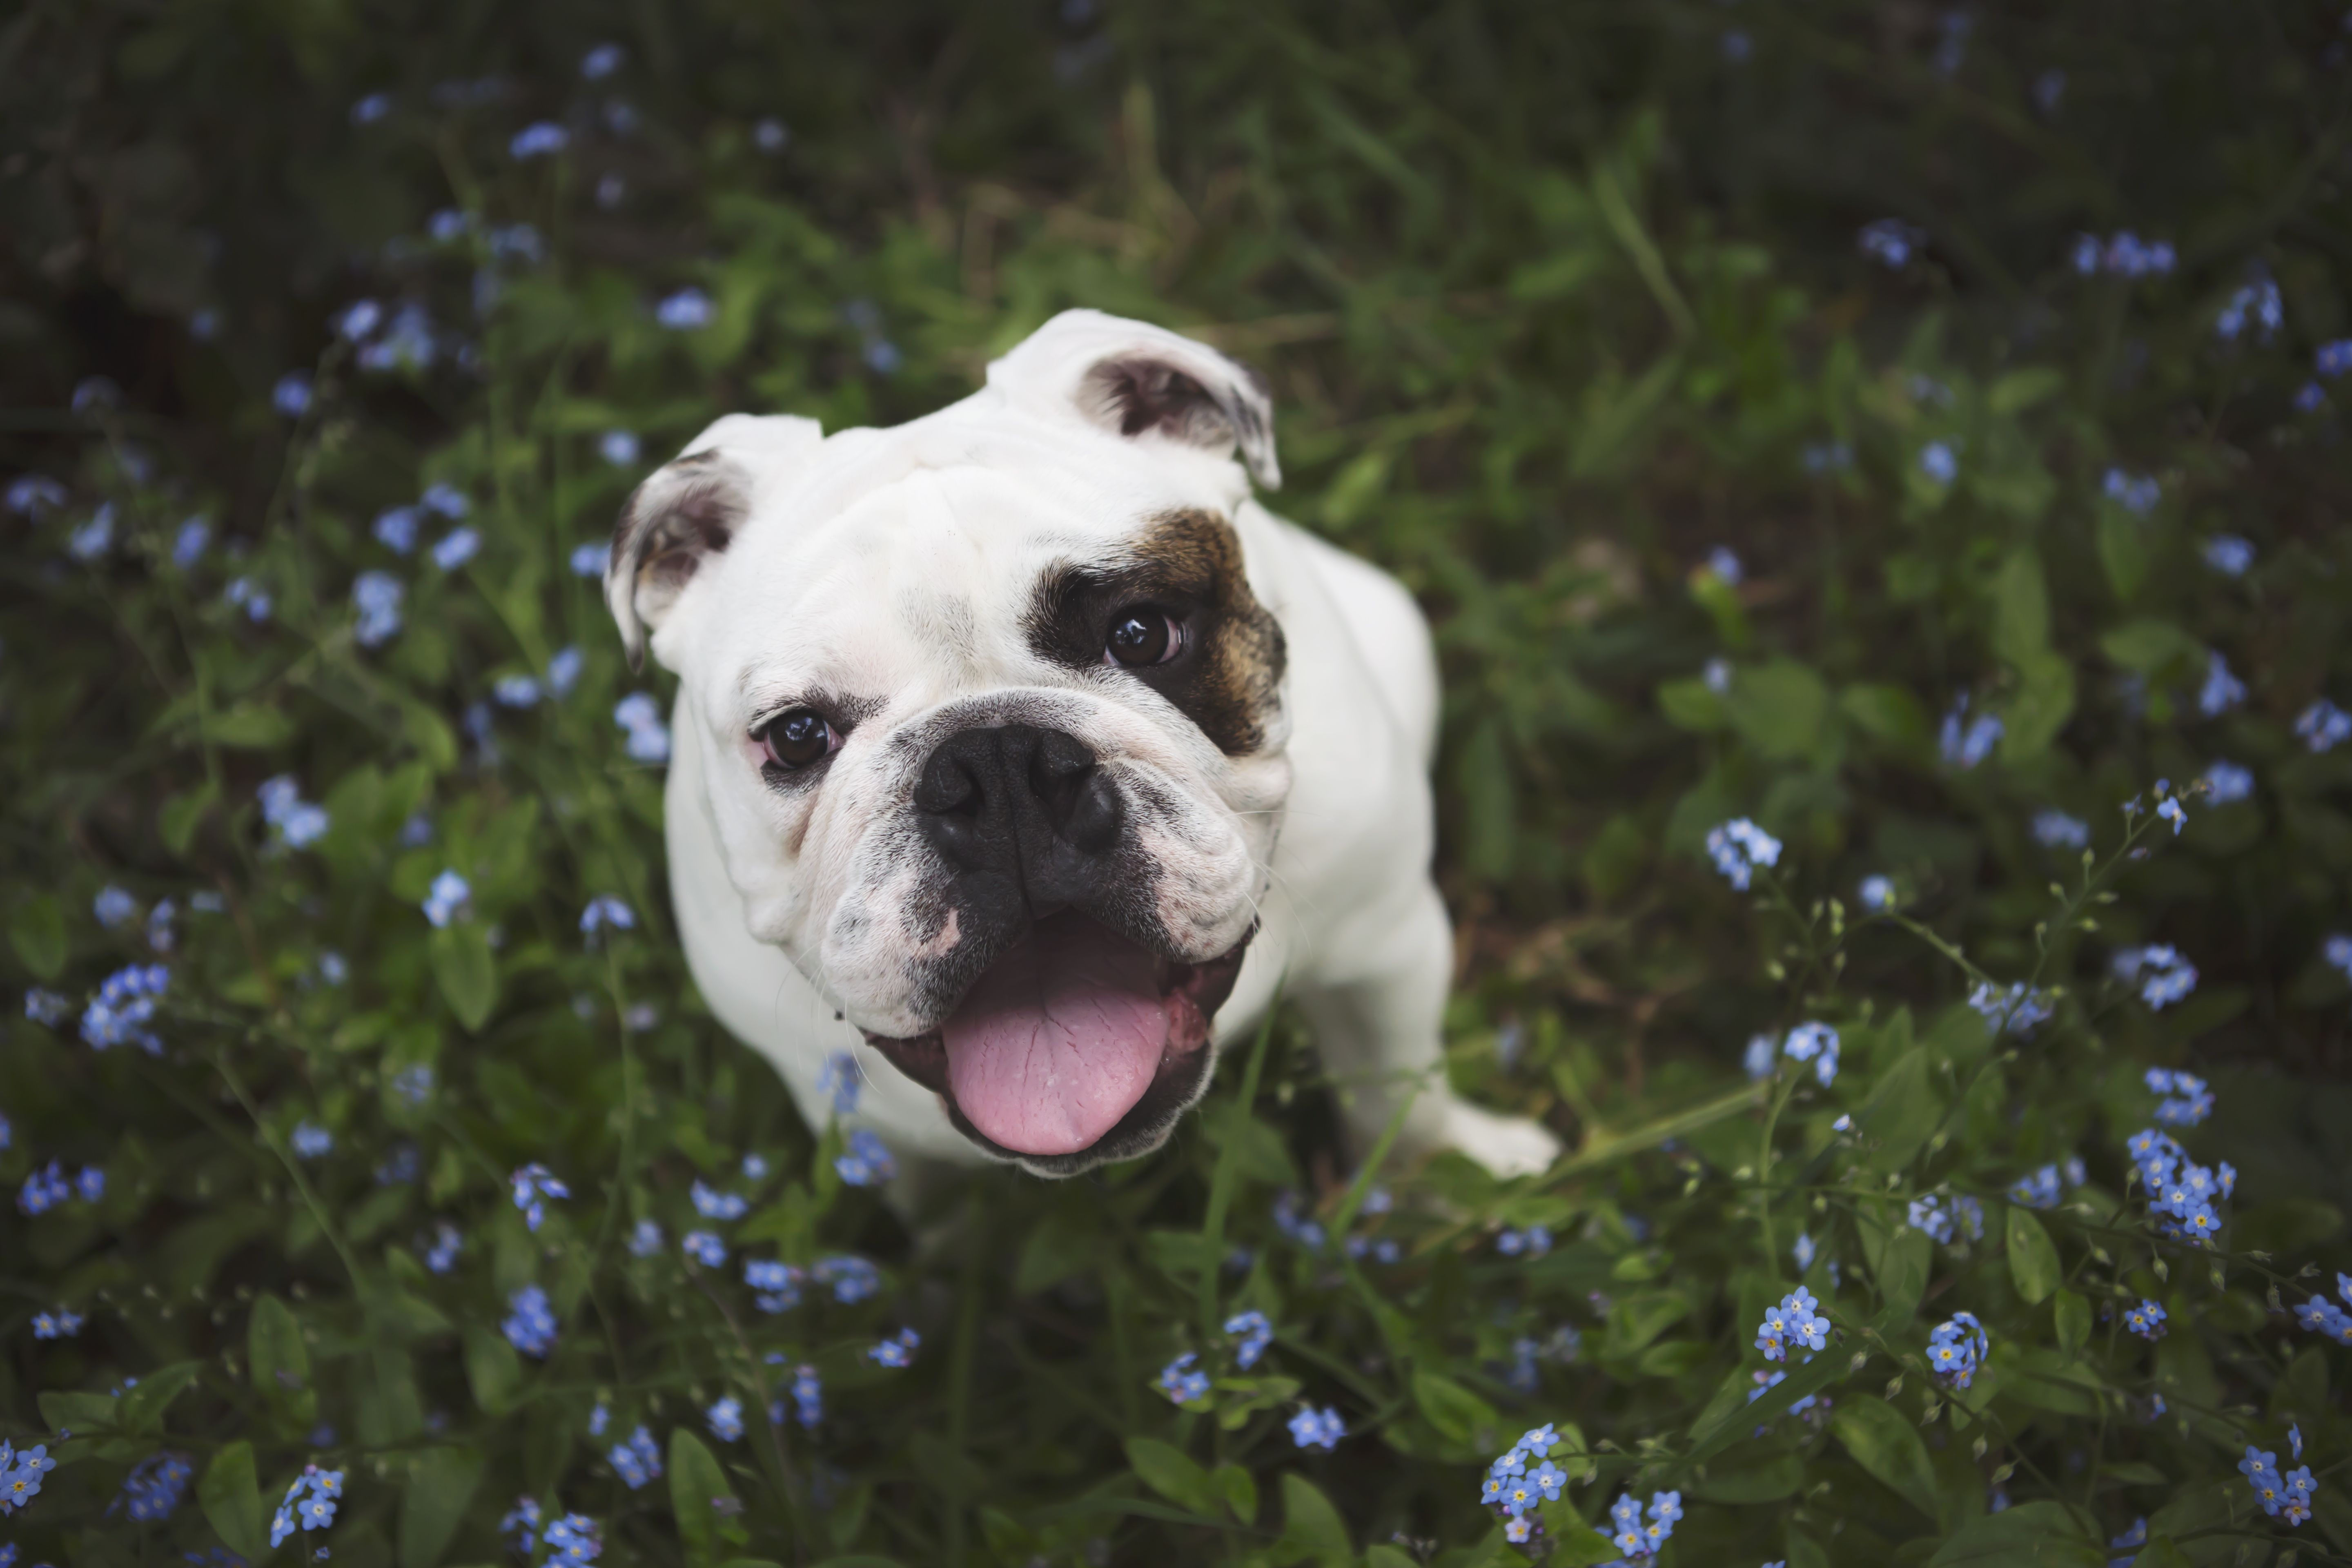 English Bulldog Photoshoot English Bulldog Puppies English Bulldog Dog Photoshoot